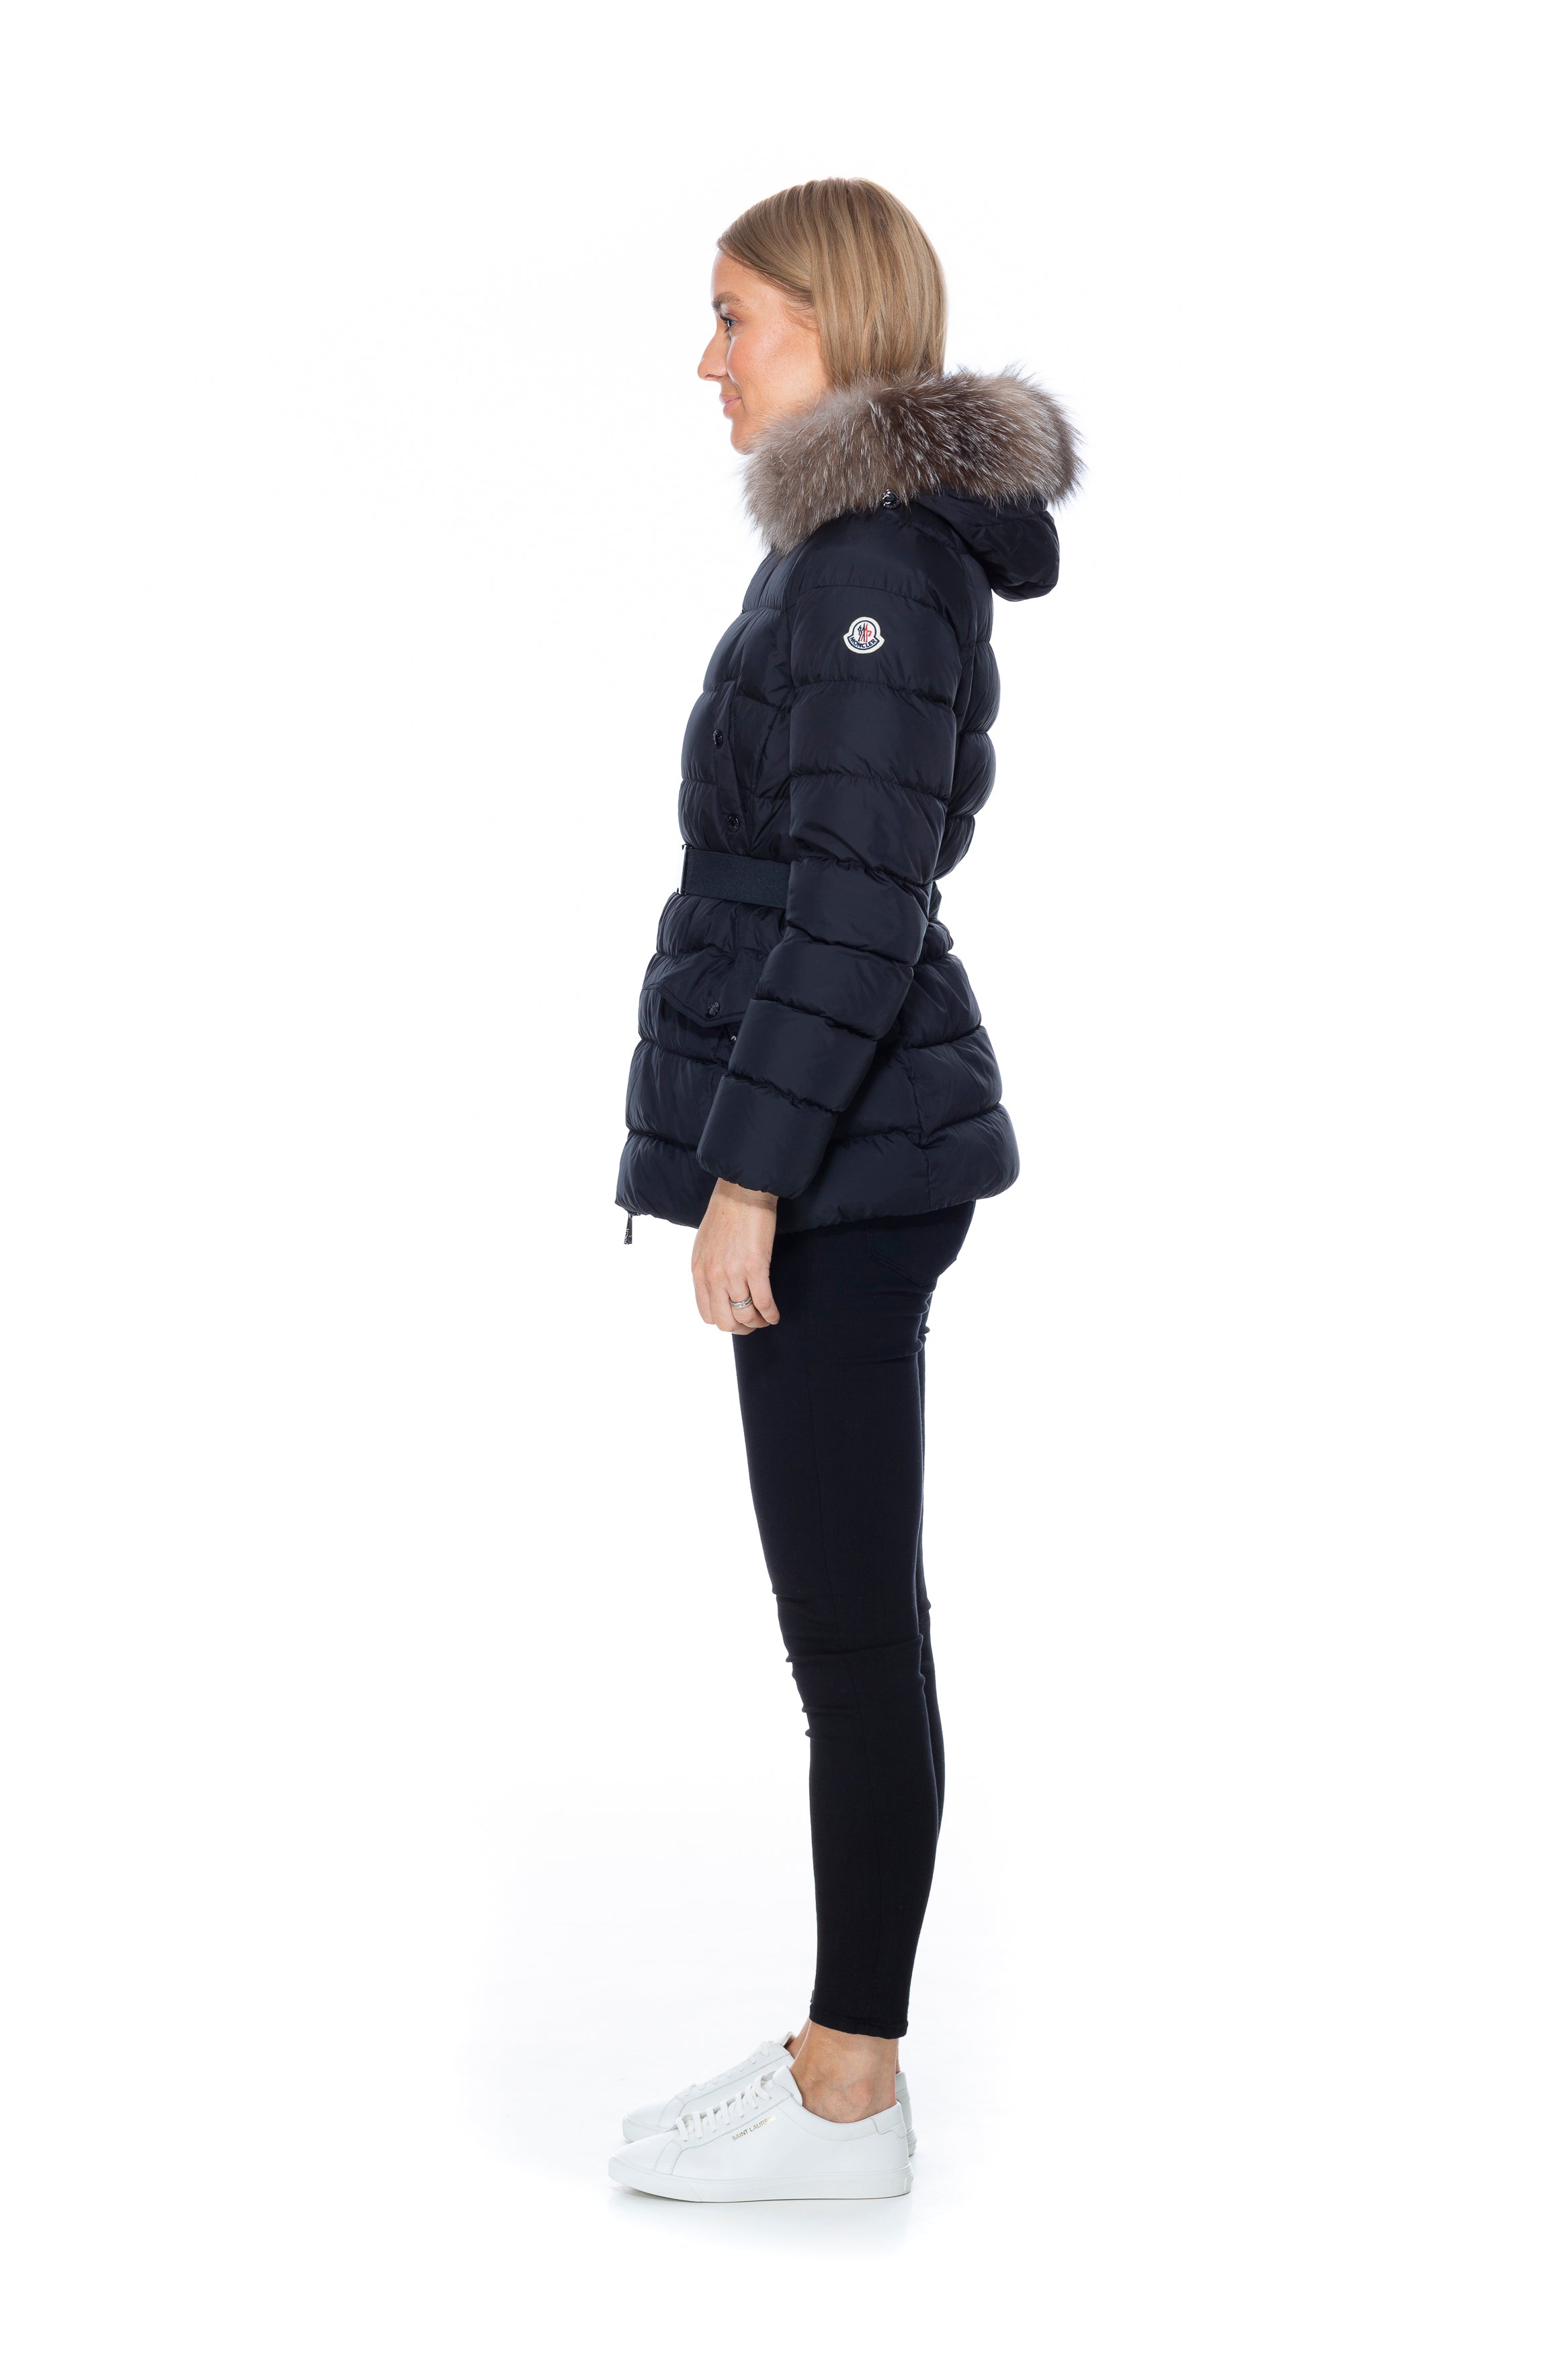 CLION JACKET BLACK